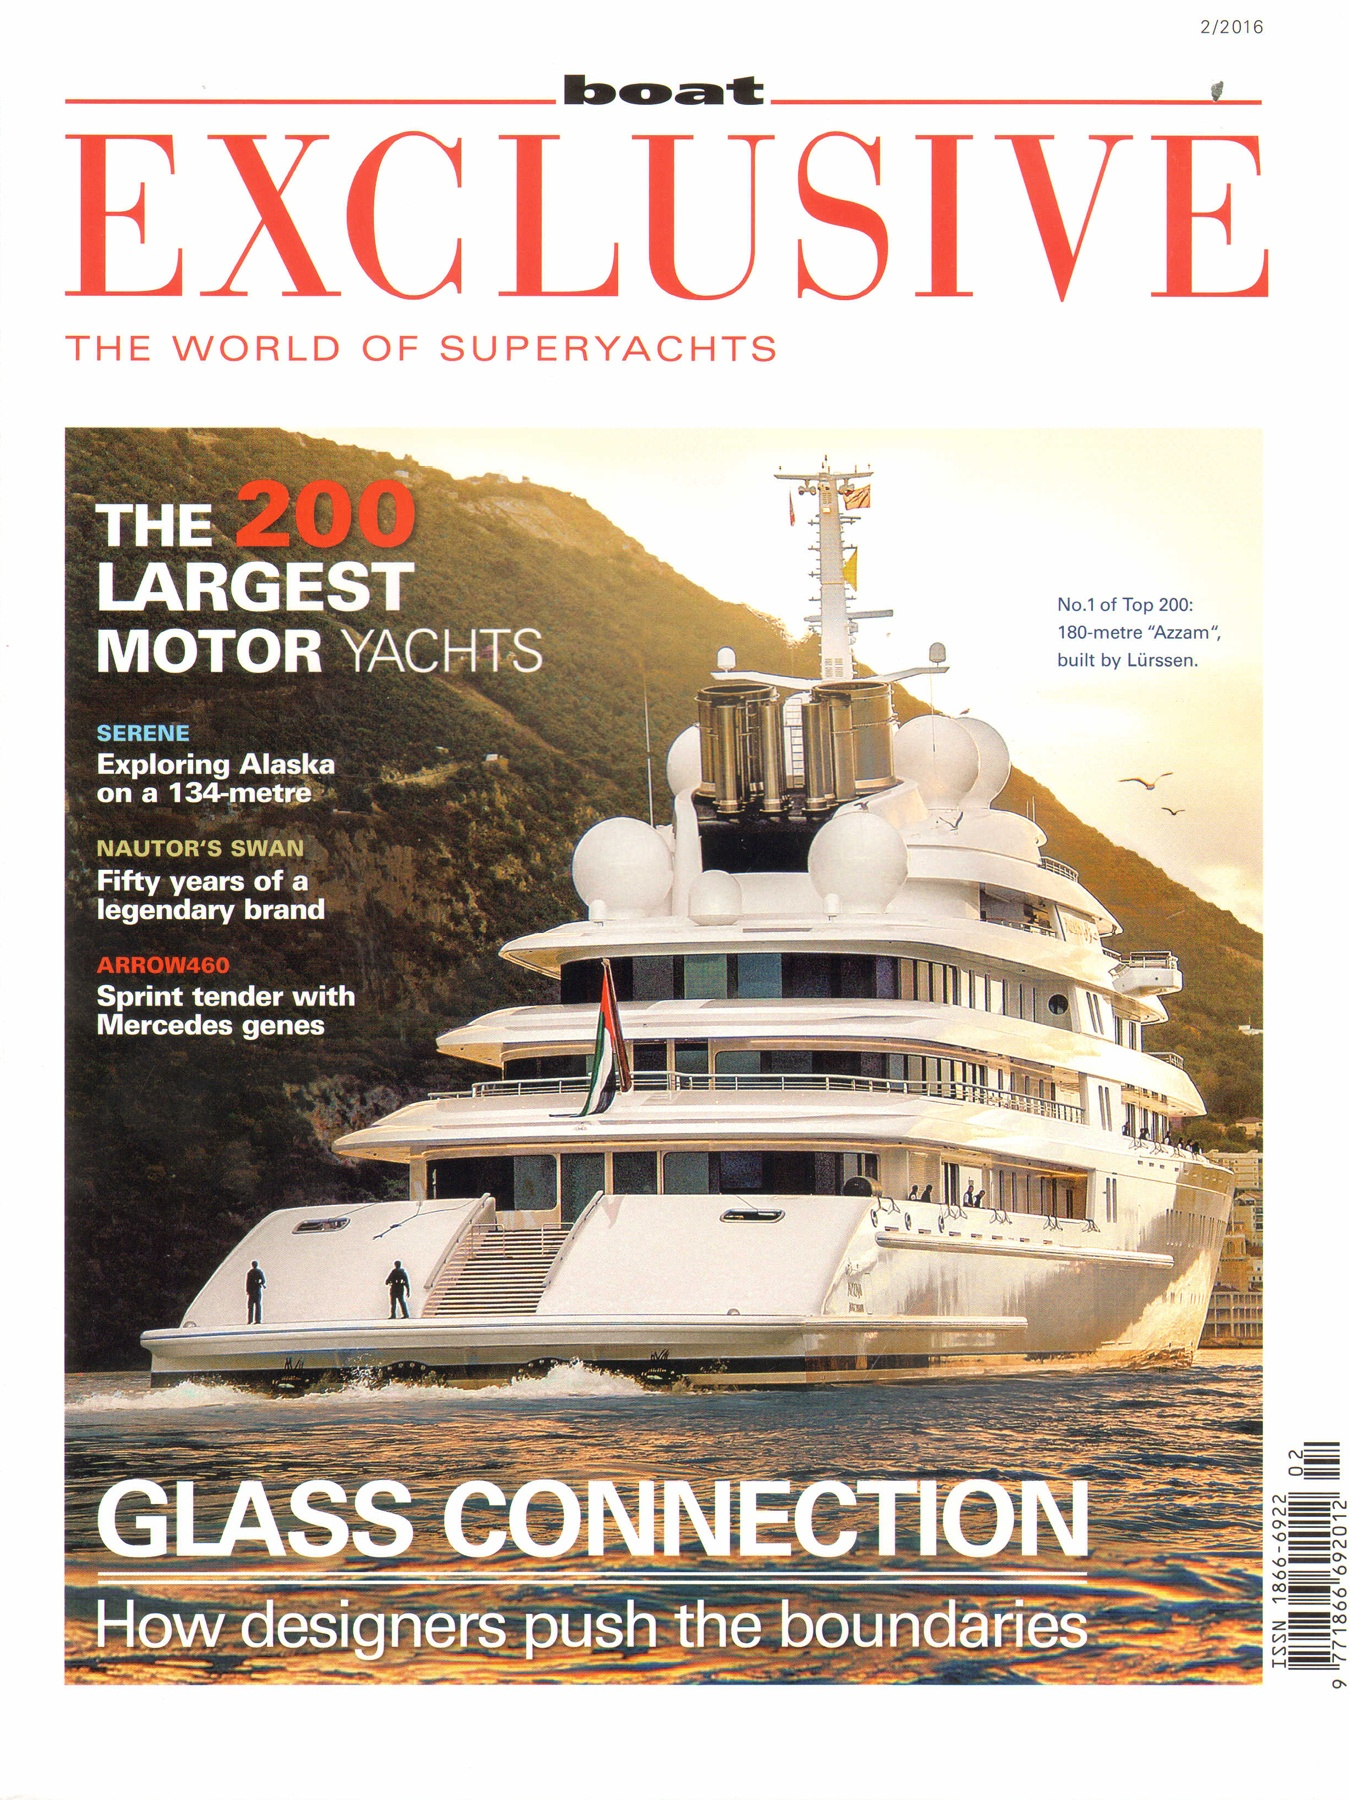 Boat Exclusive Feb 2016 Front Cover_2.jpg